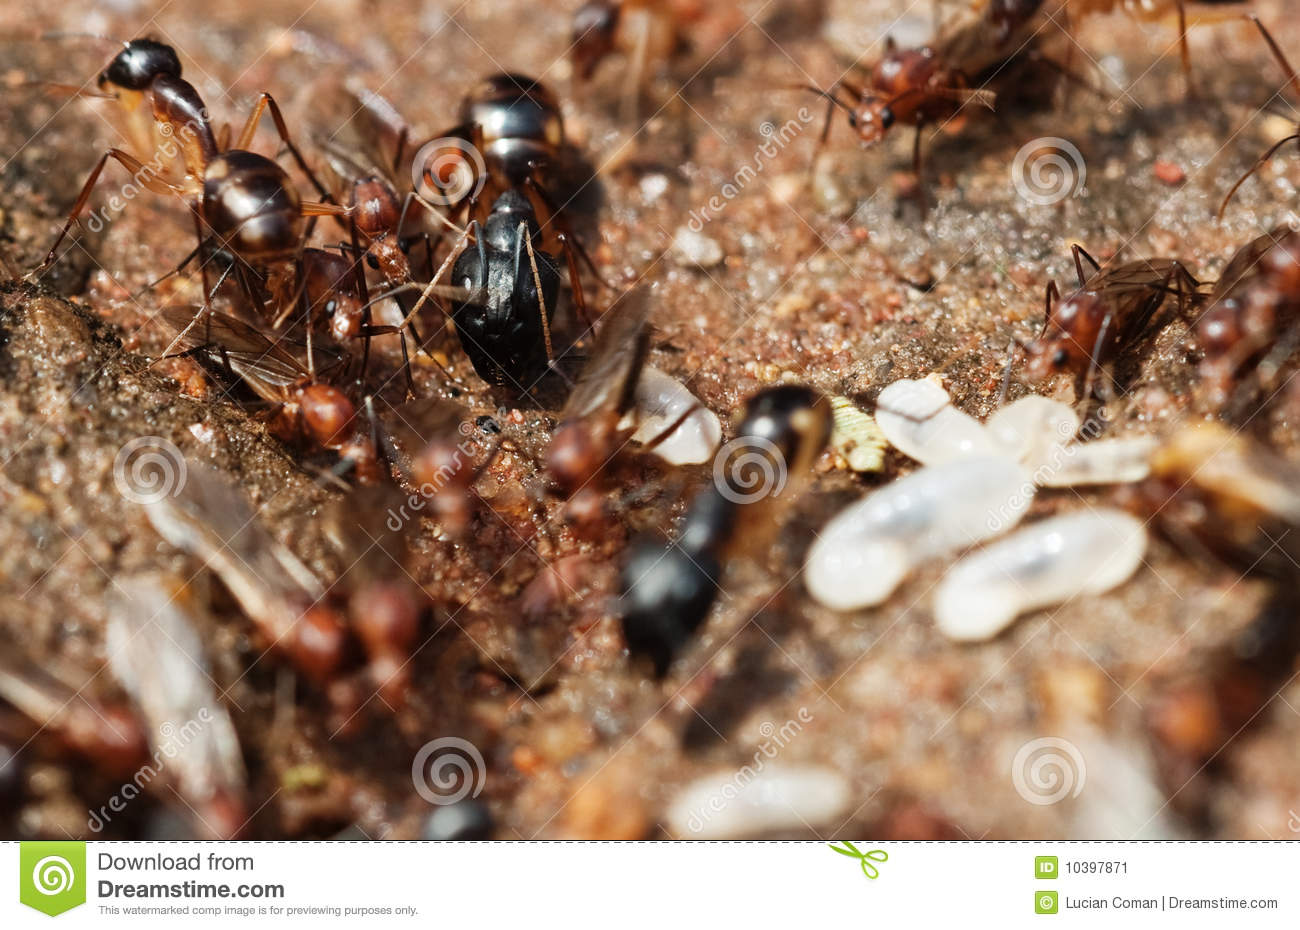 Red ant vs black ant games online